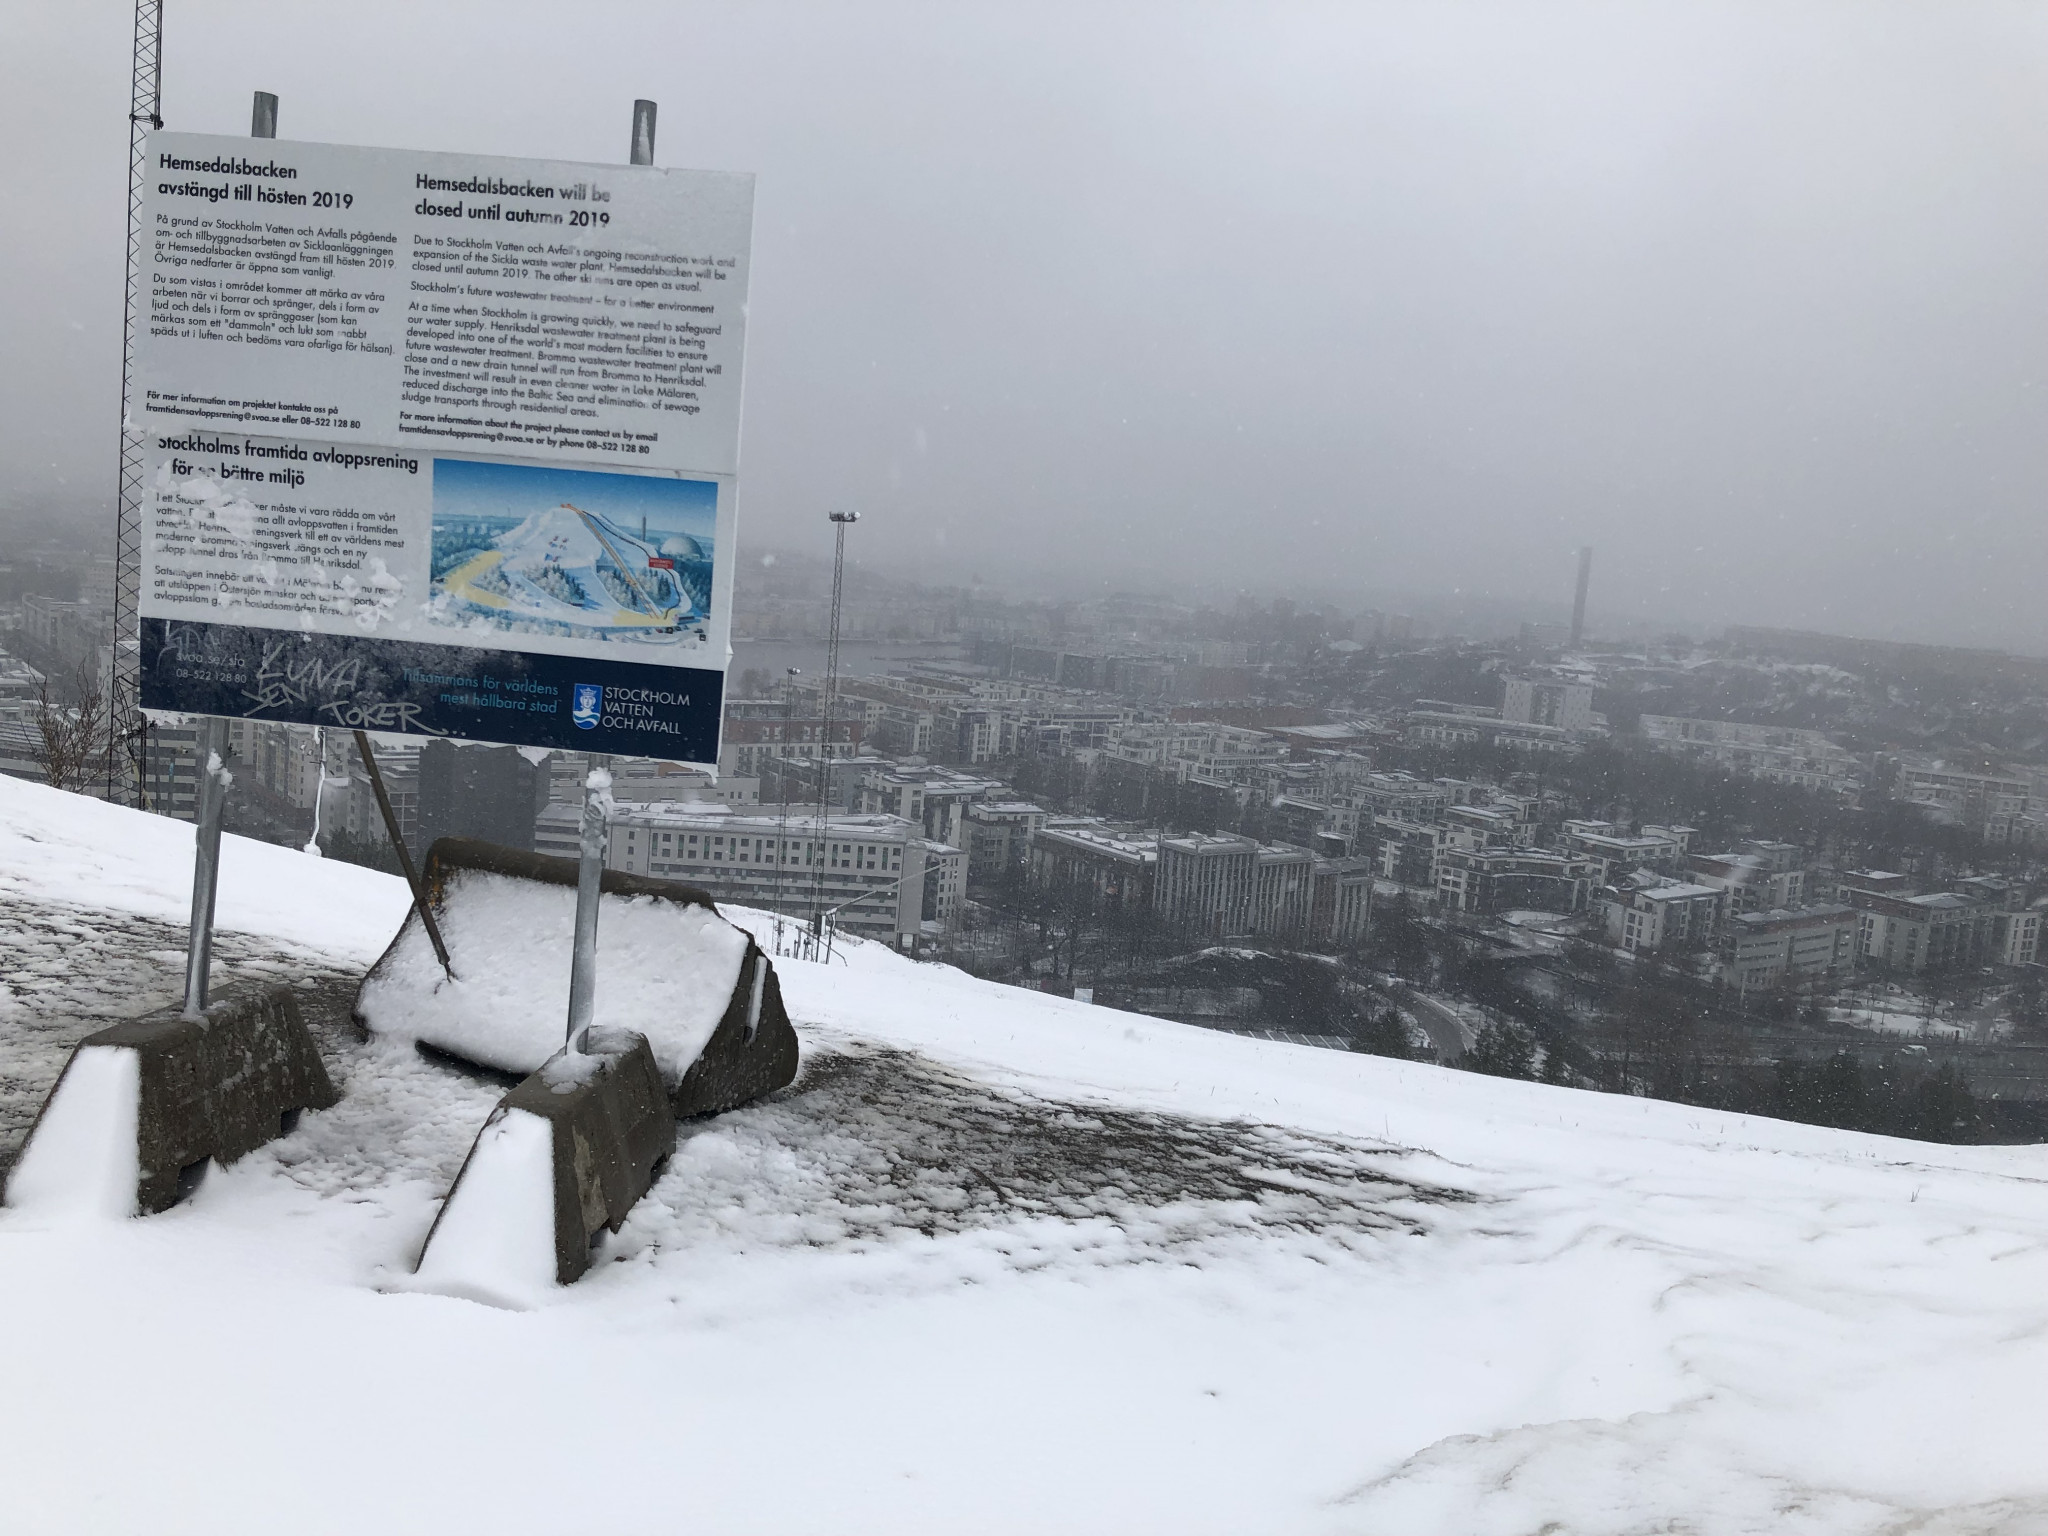 There are great views of Stockholm from Hammarbybacken, the proposed site for parallel team Alpine skiing ©ITG